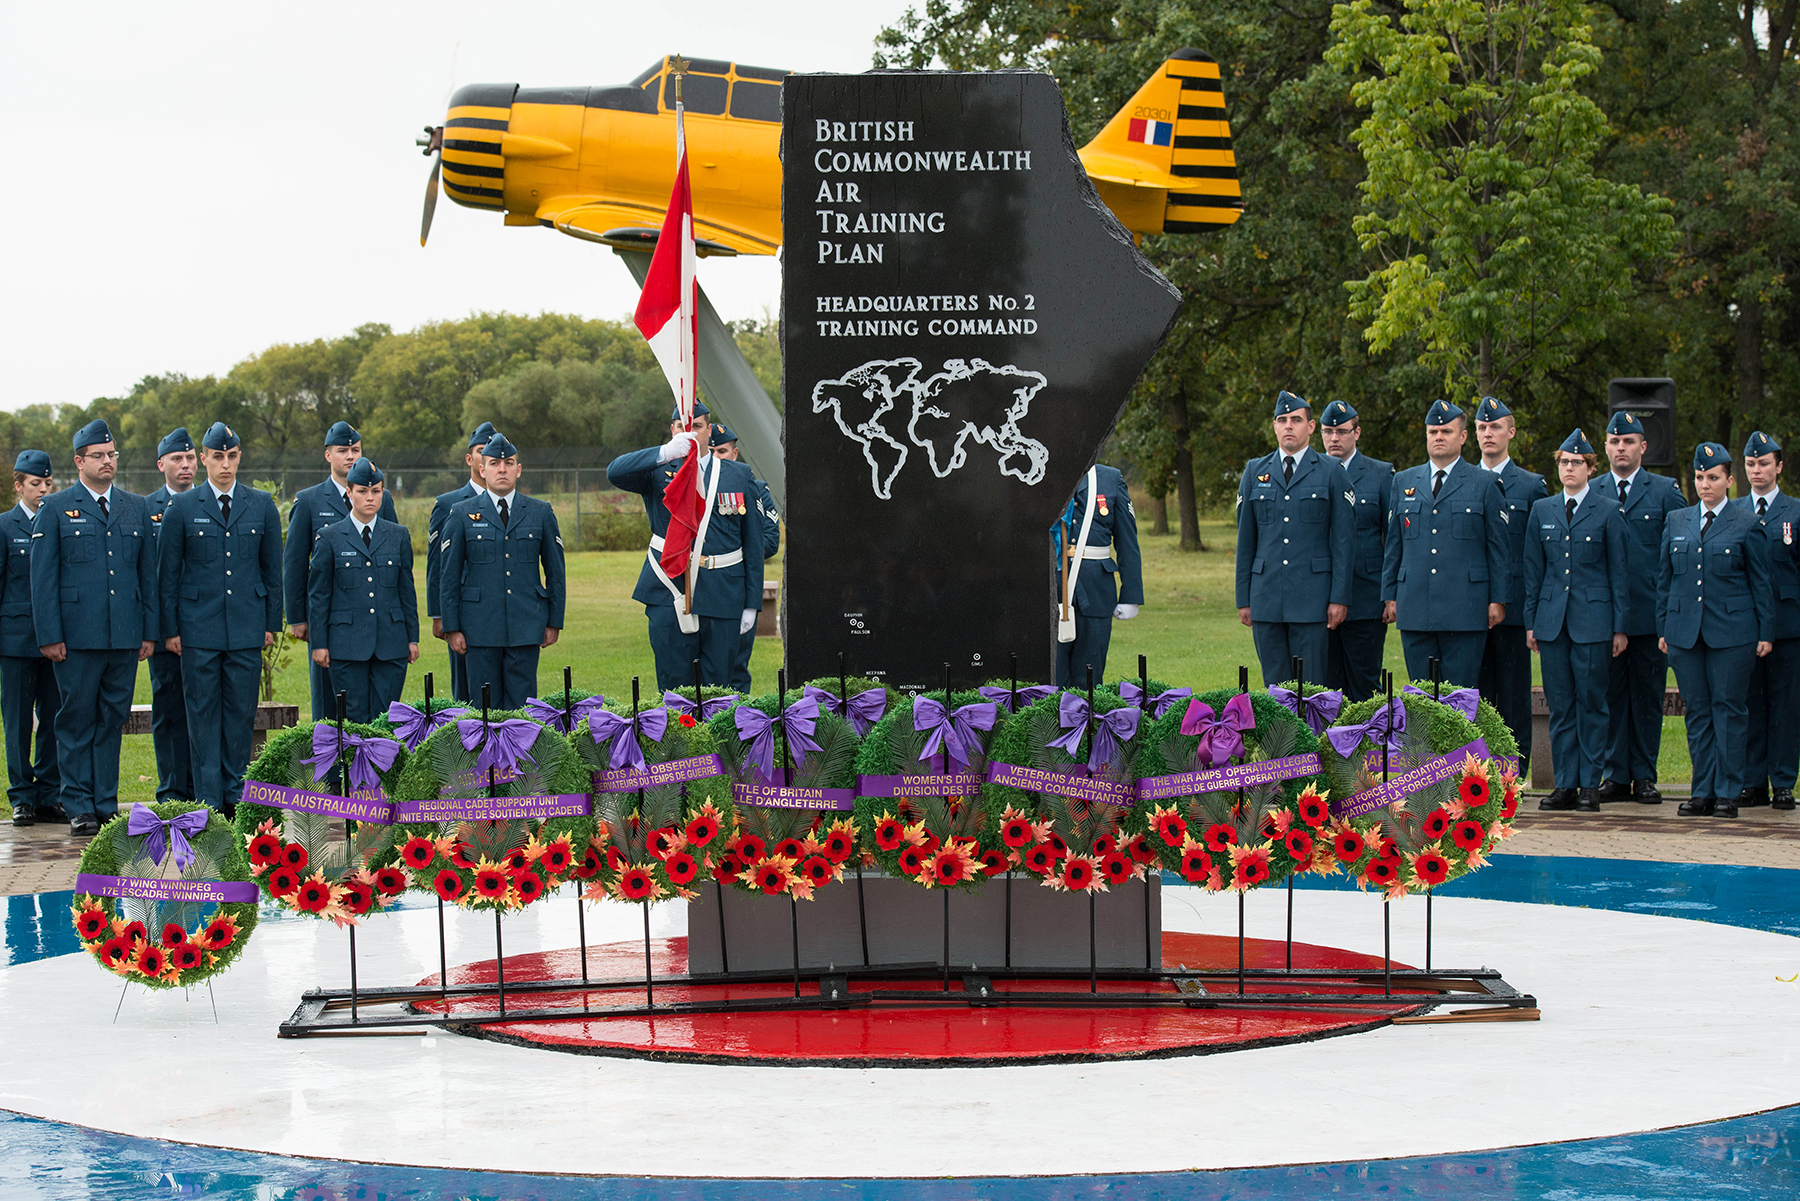 17 Wing Winnipeg, Manitoba, members, families, friends and guests marked the 76th anniversary of the Battle of Britain on September 18, 2016, with a parade and ceremony held at the Garden of Memories in Winnipeg. PHOTO: Sergeant Daren Kraus, FW2016-0005-42